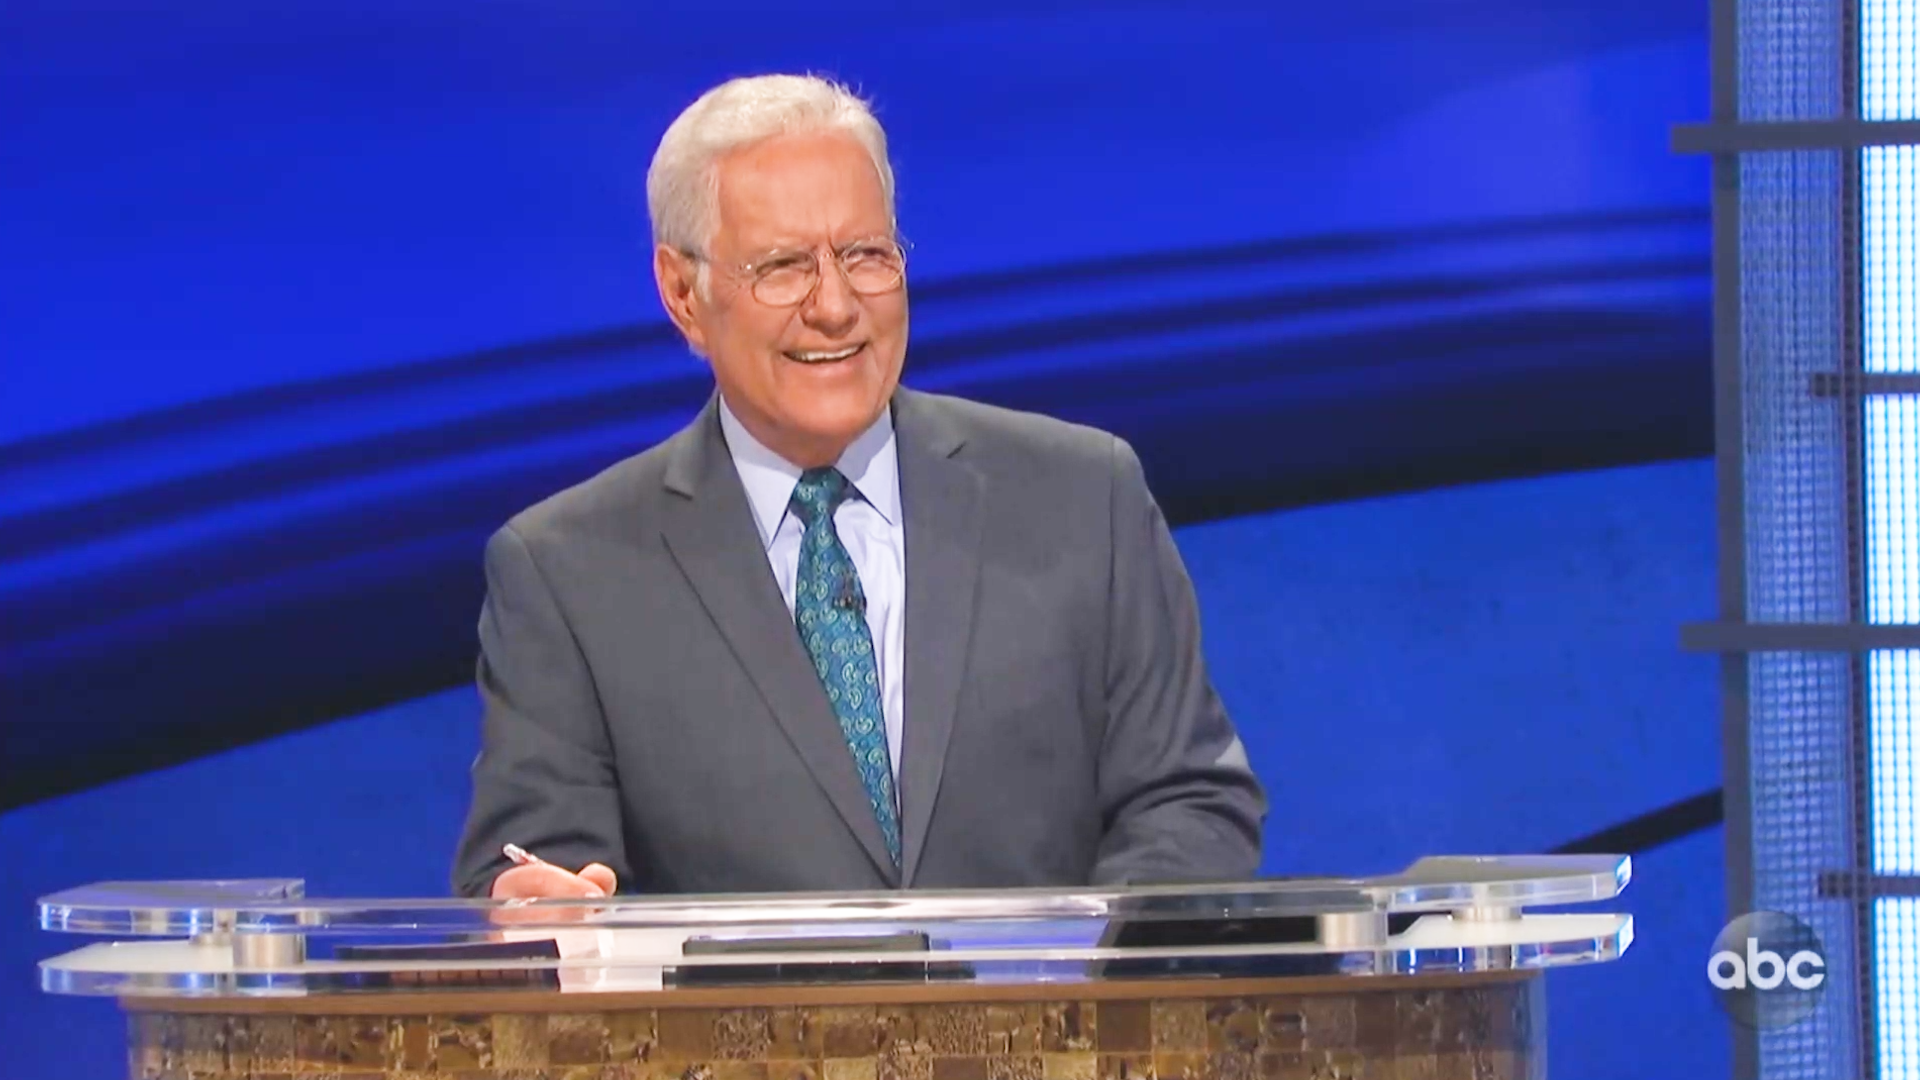 Alex Trebek gets Ok Boomered by Ken Jennings during rowdy Jeopardy!